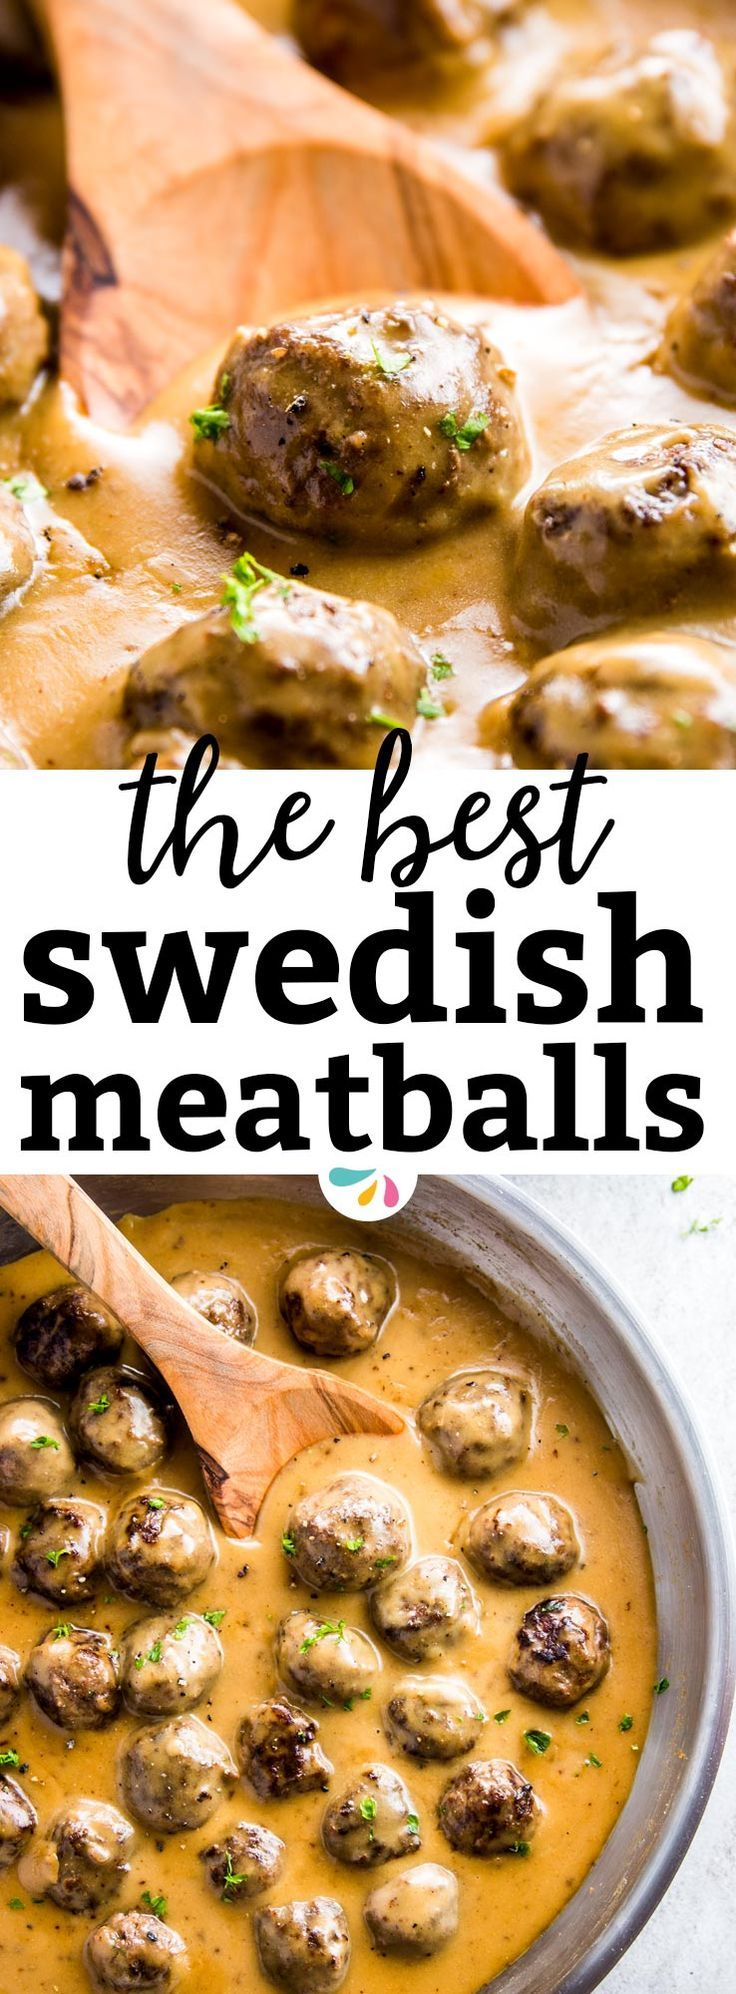 Easy Swedish Meatballs are homemade meatballs in a rich brown gravy sauce. They're simple to make and taste delicious - your whole family will love them, they really are the best! Try them for dinner with mashed potatoes or egg noodles tonight  | Posted By: DebbieNet.com